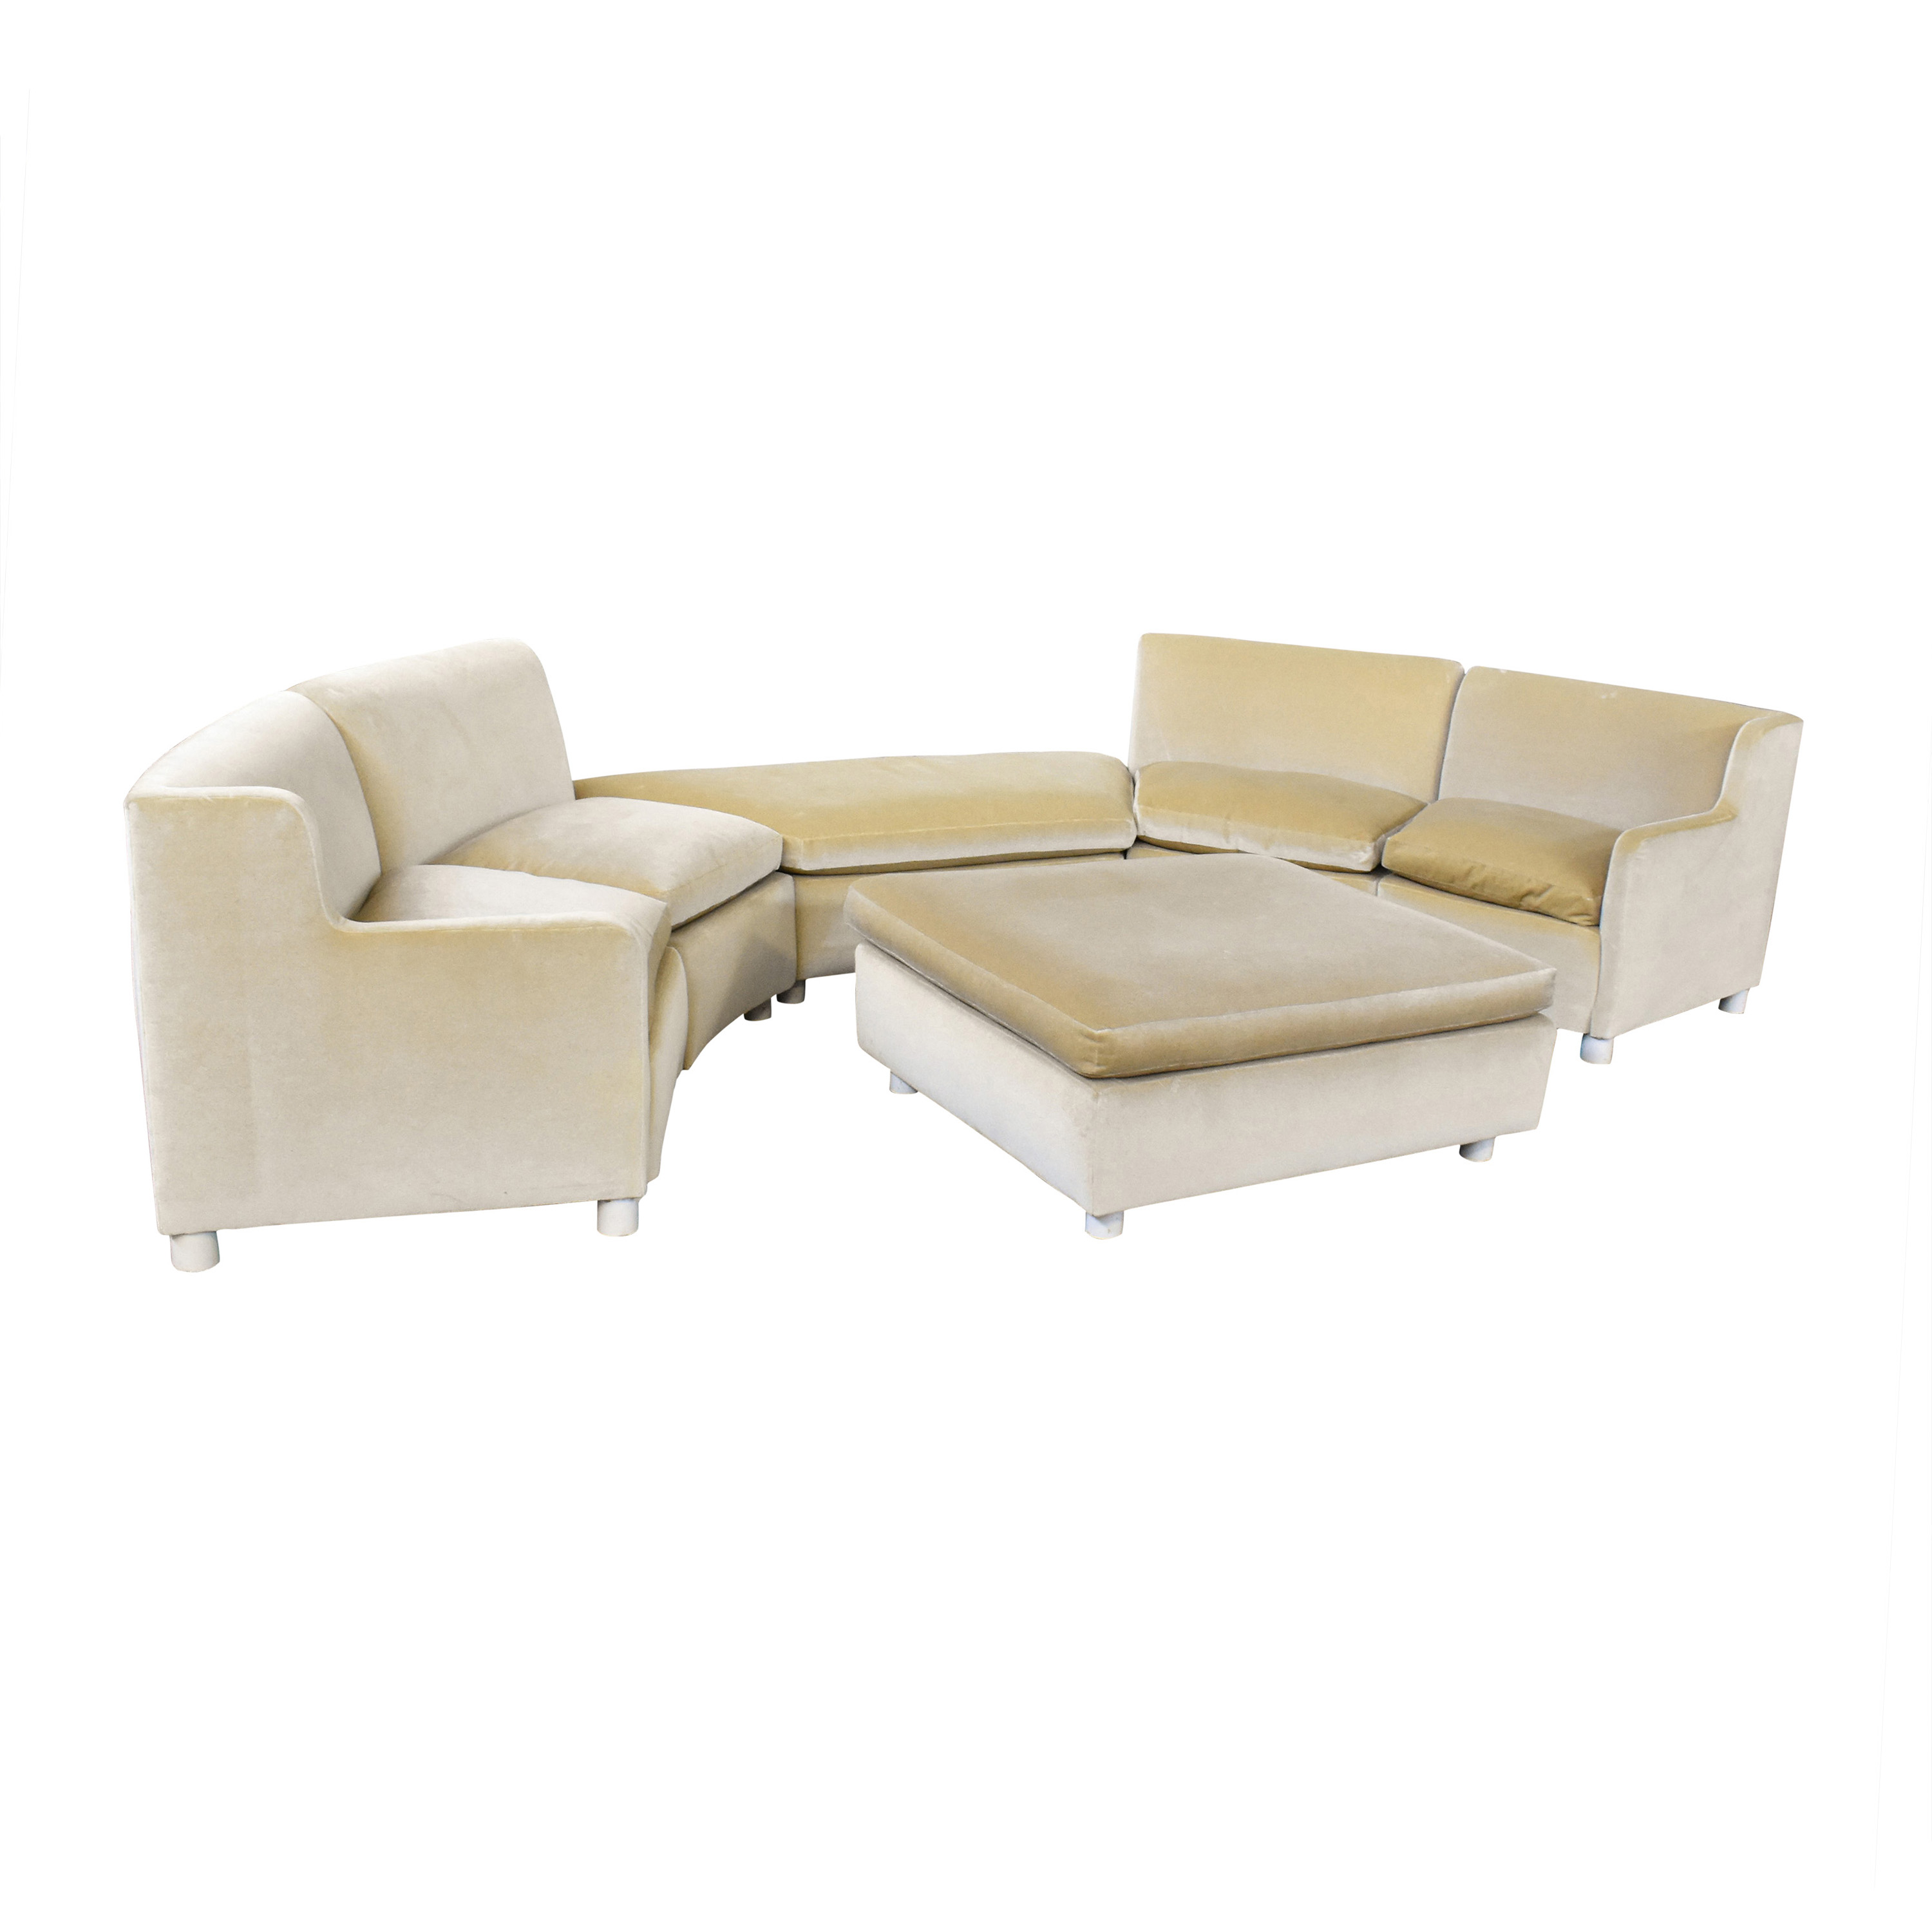 Curved Art Deco Sectional with Ottomans on sale